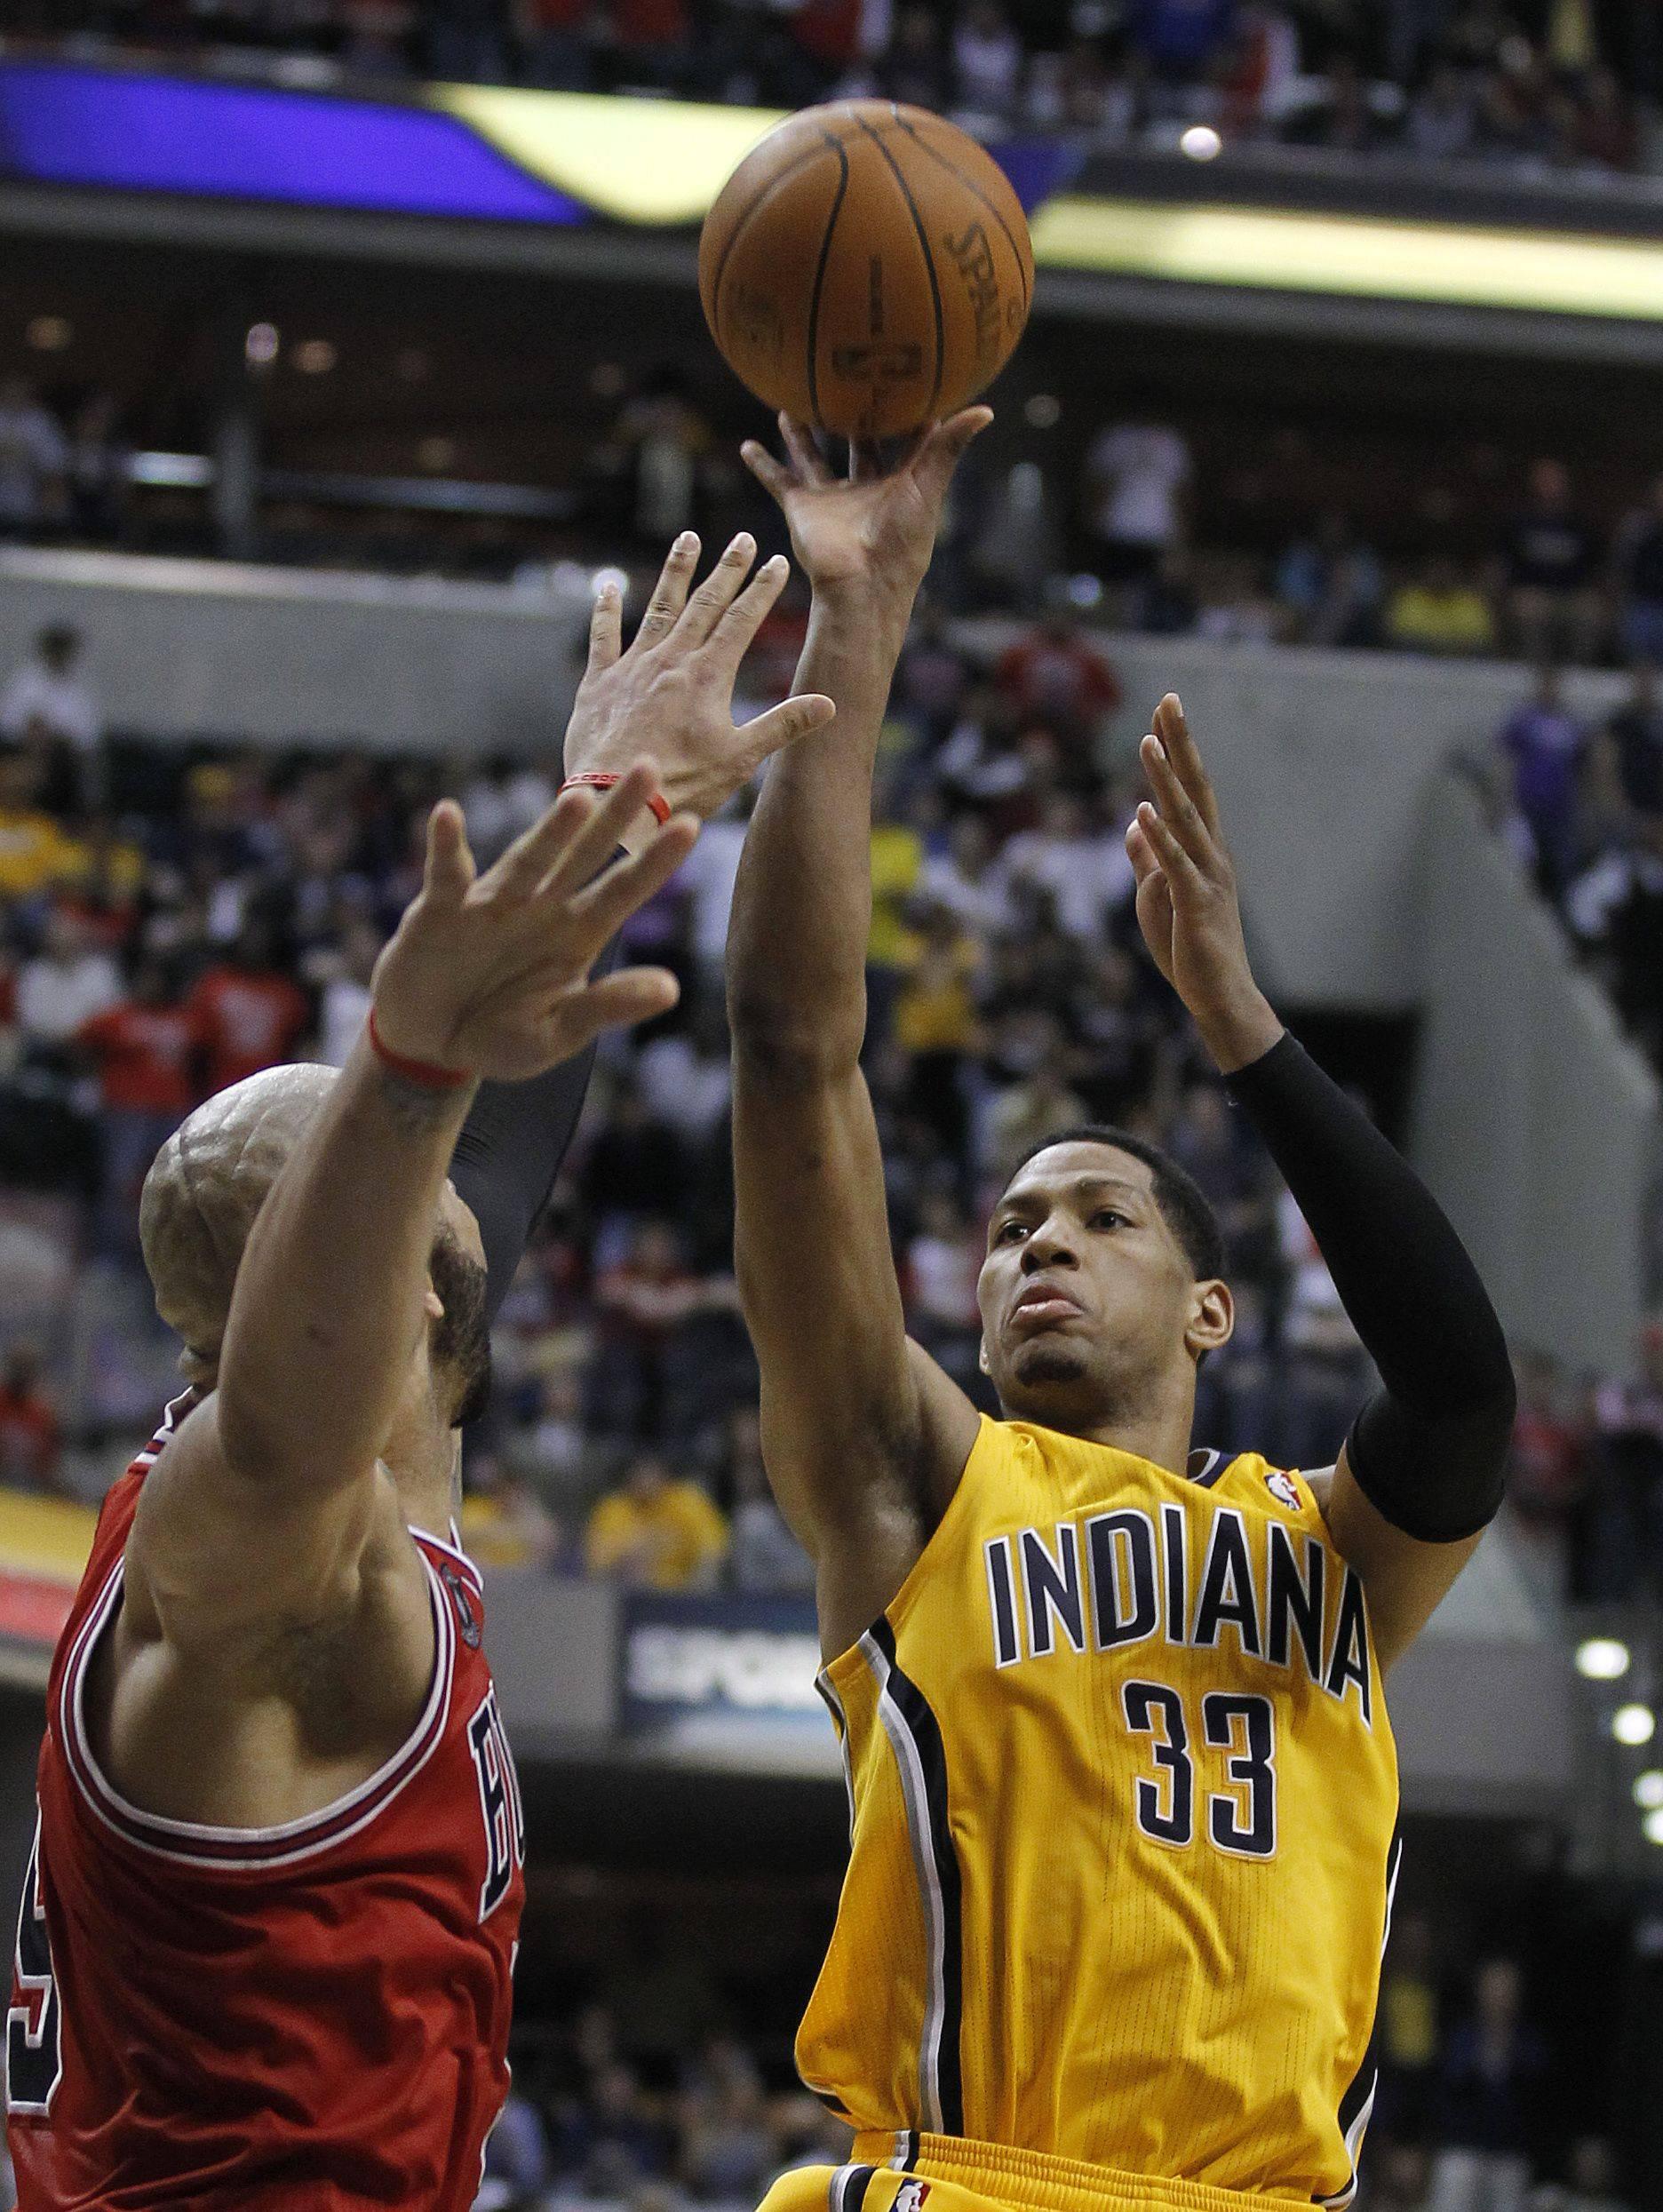 Indiana Pacers' Danny Granger, right, puts up a shot against Chicago Bulls' Carlos Boozer during the second half of Game 4 of a first-round NBA basketball series in Indianapolis, Saturday, April 23, 2011. Indianan won 89-84.